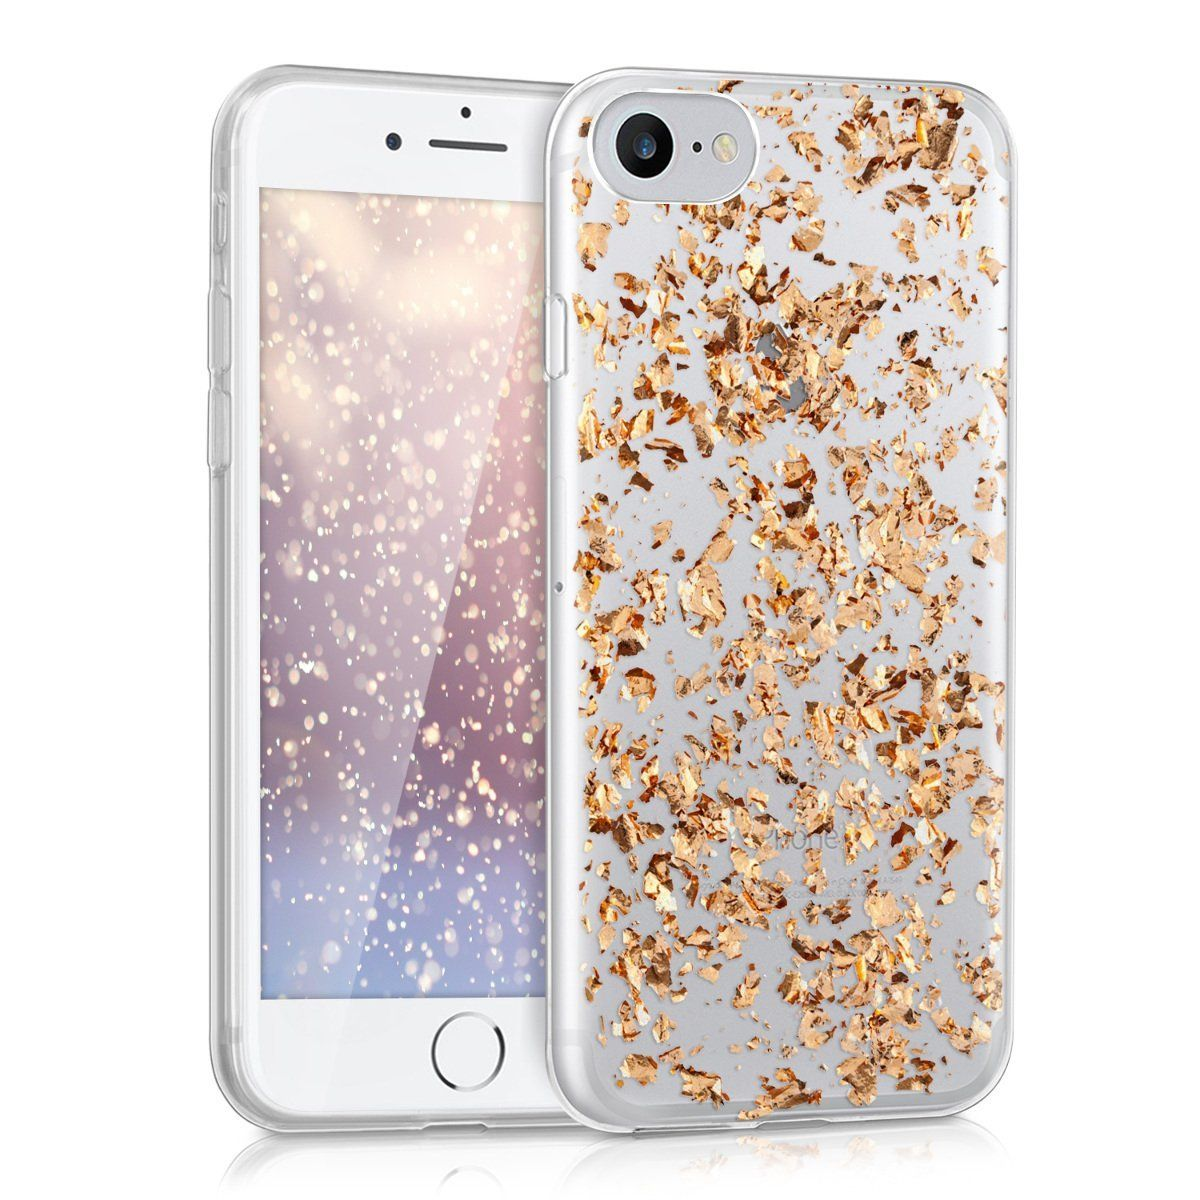 Kwmobile Crystal Case Kwmobile Crystal Tpu Silicone Case For Apple Iphone 7 8 In